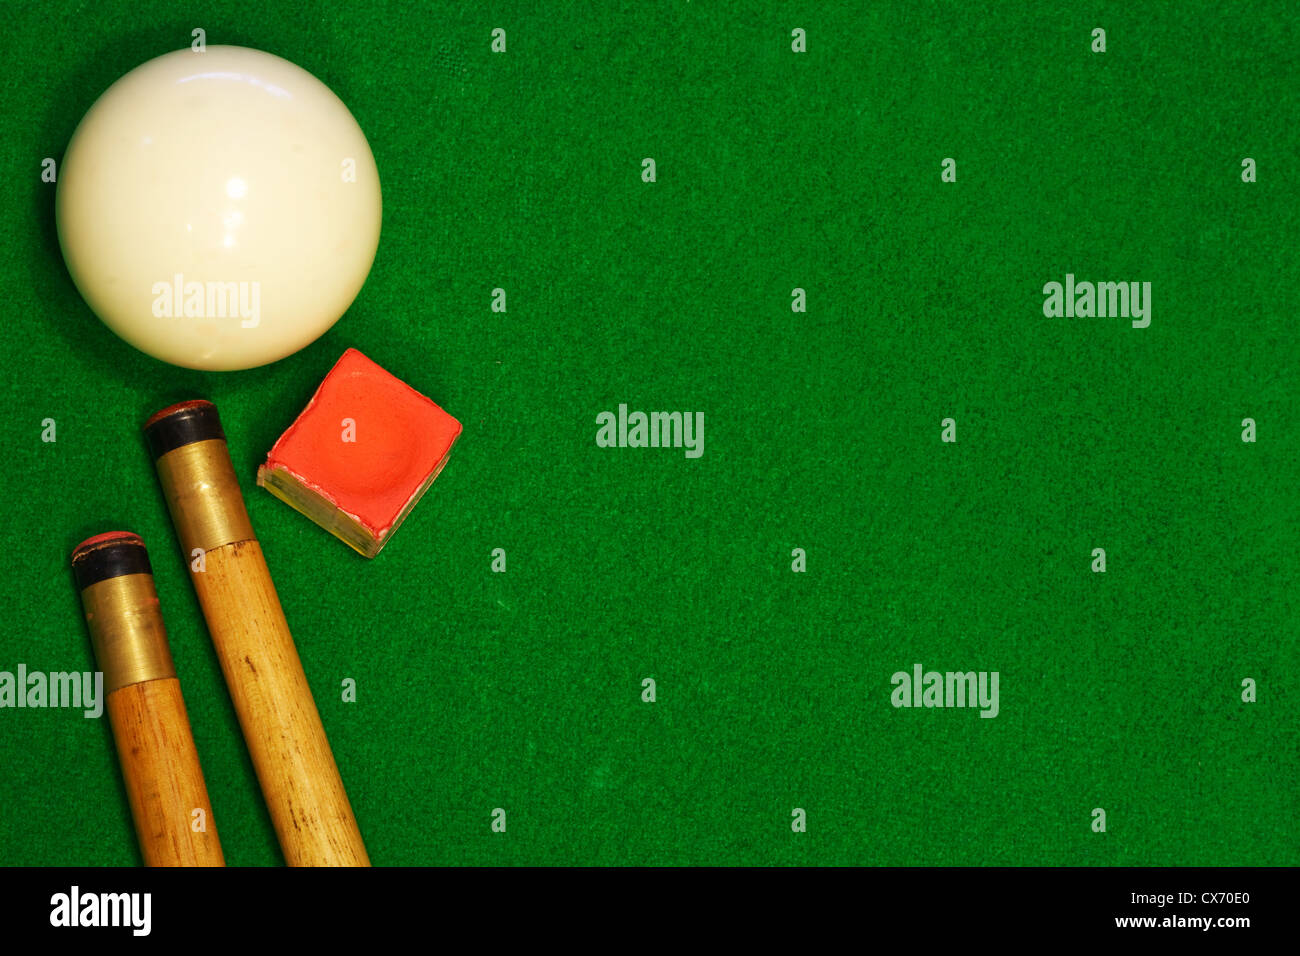 A green cloth billiards or pool table background with cues, cueball and chalk - Stock Image